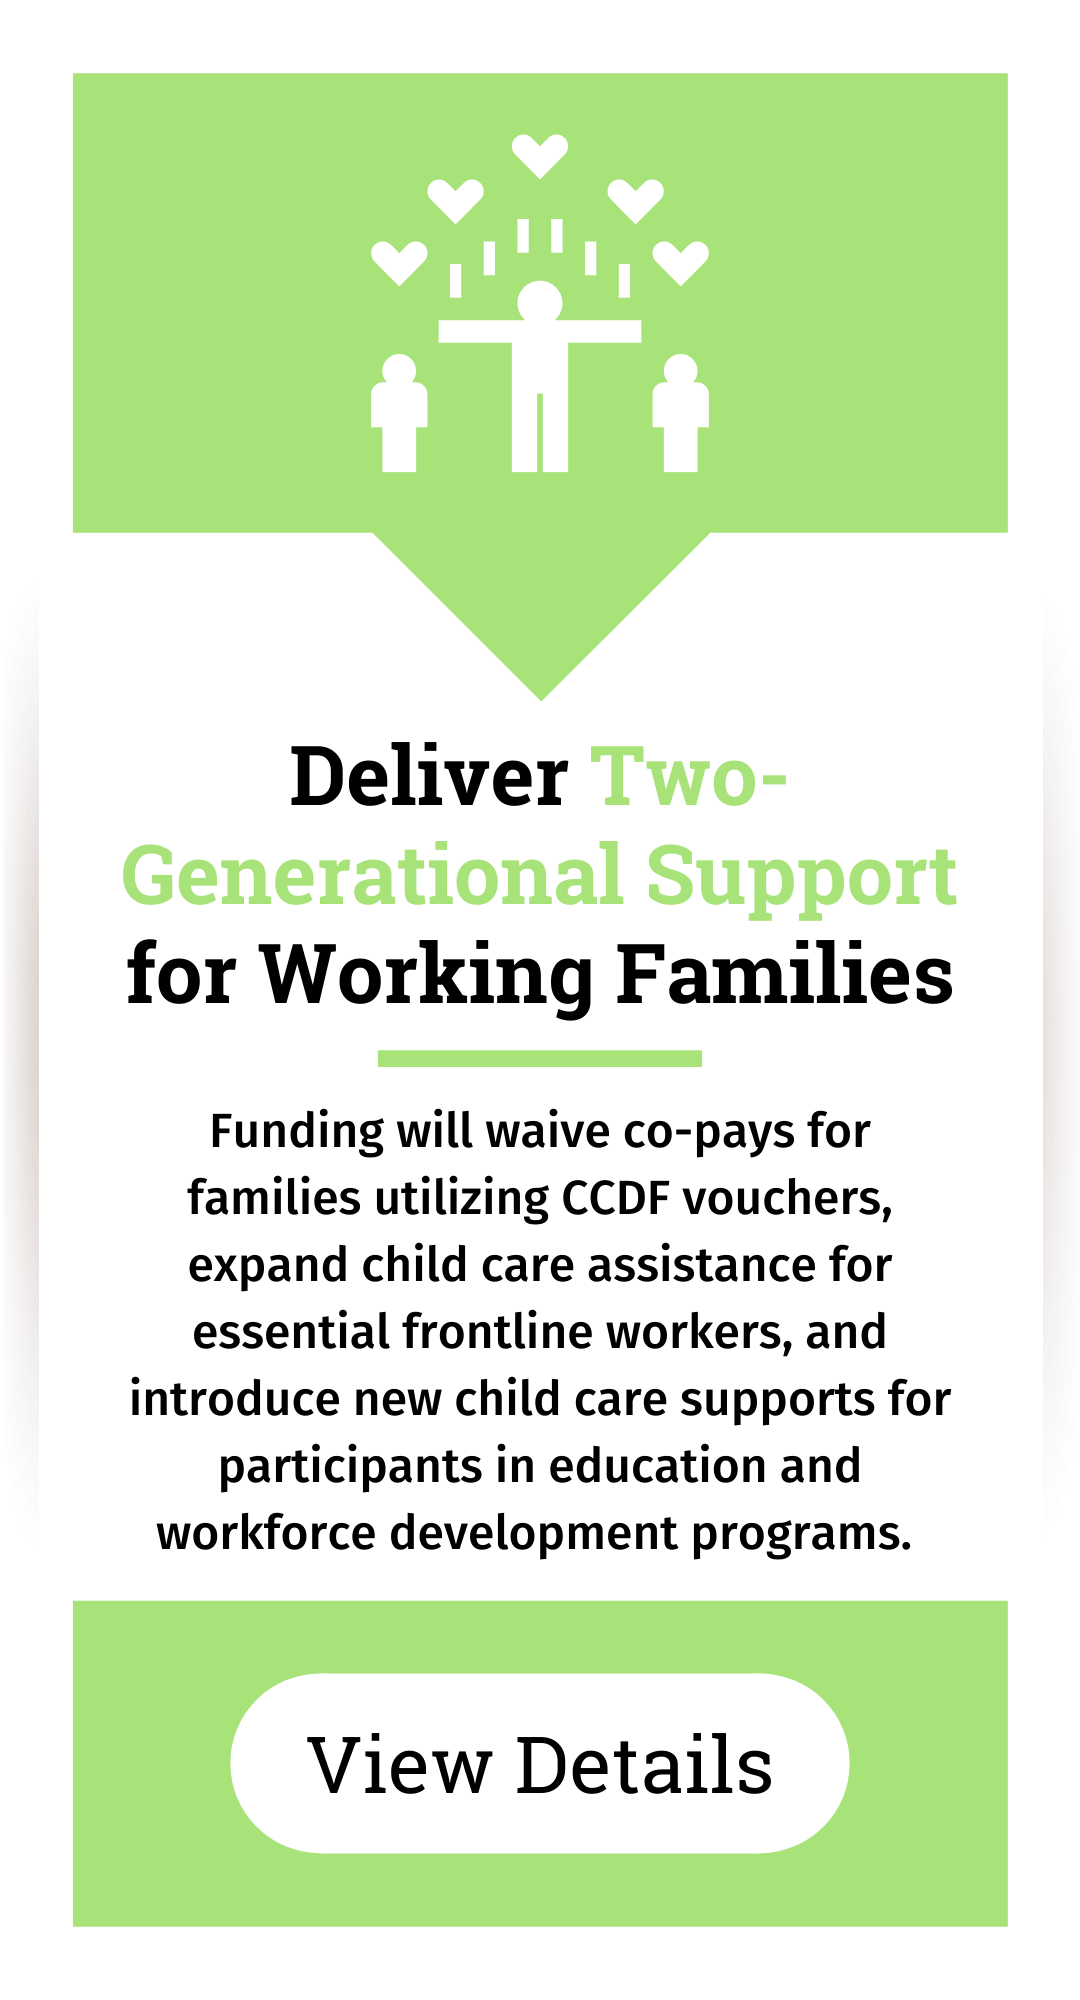 Deliver two-generational support